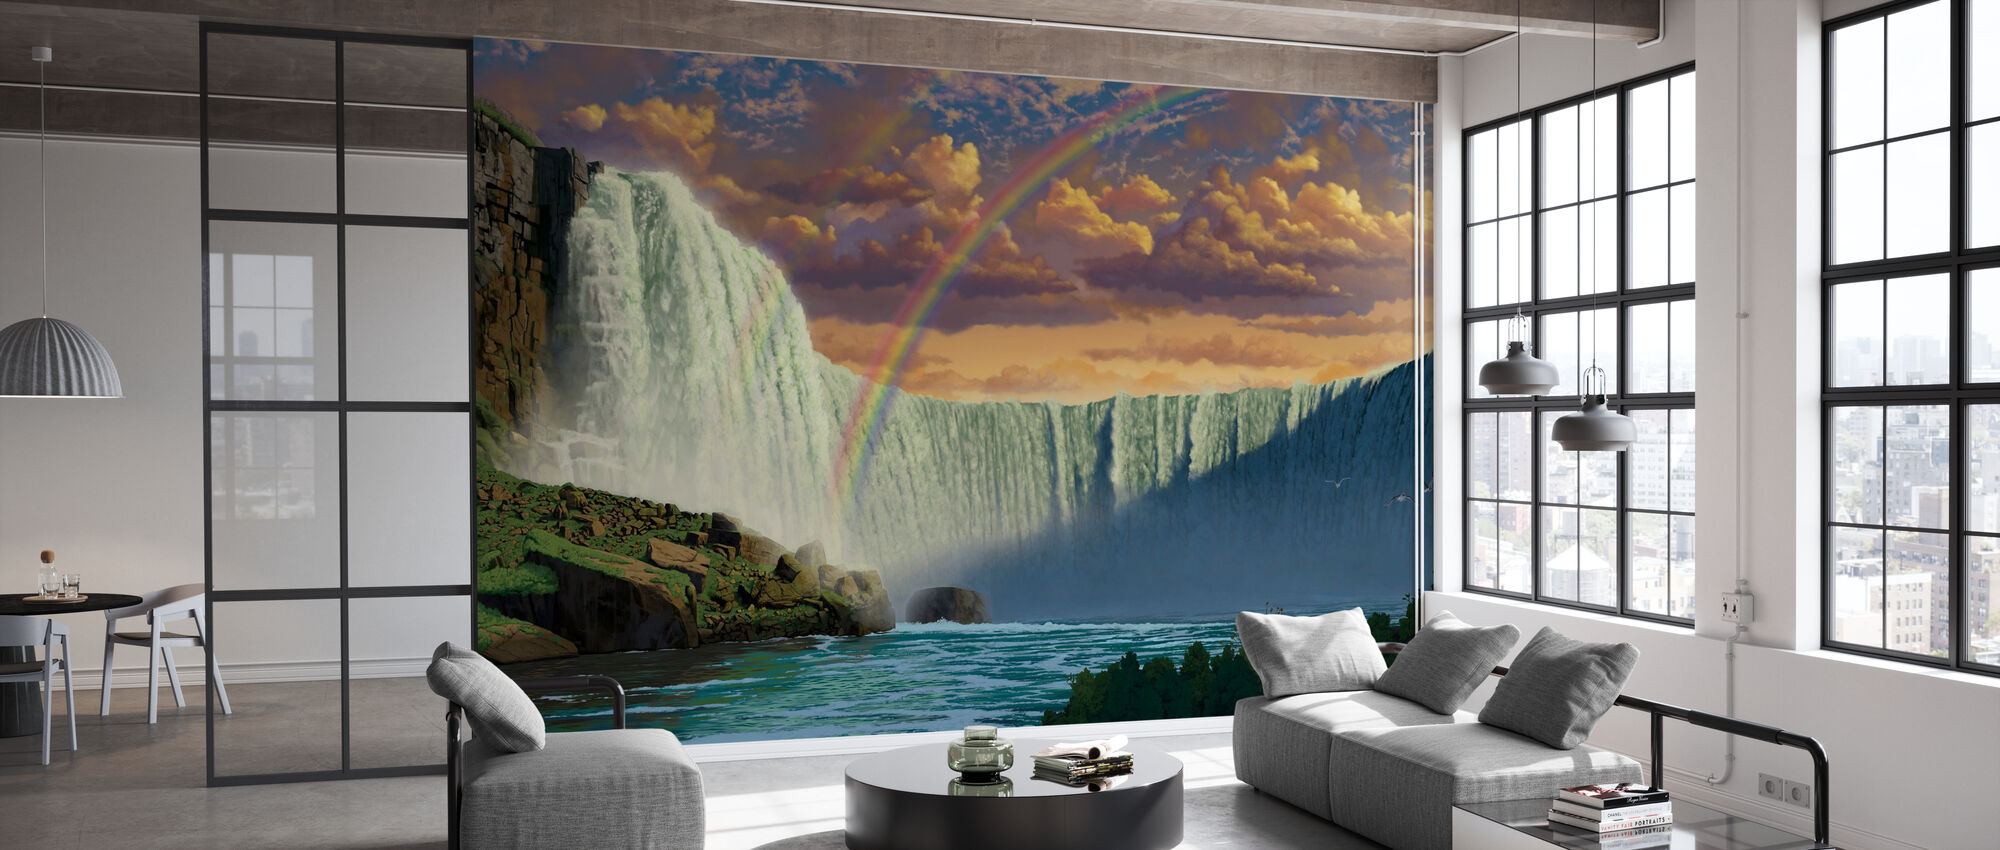 Niagara Falls - Wallpaper - Office